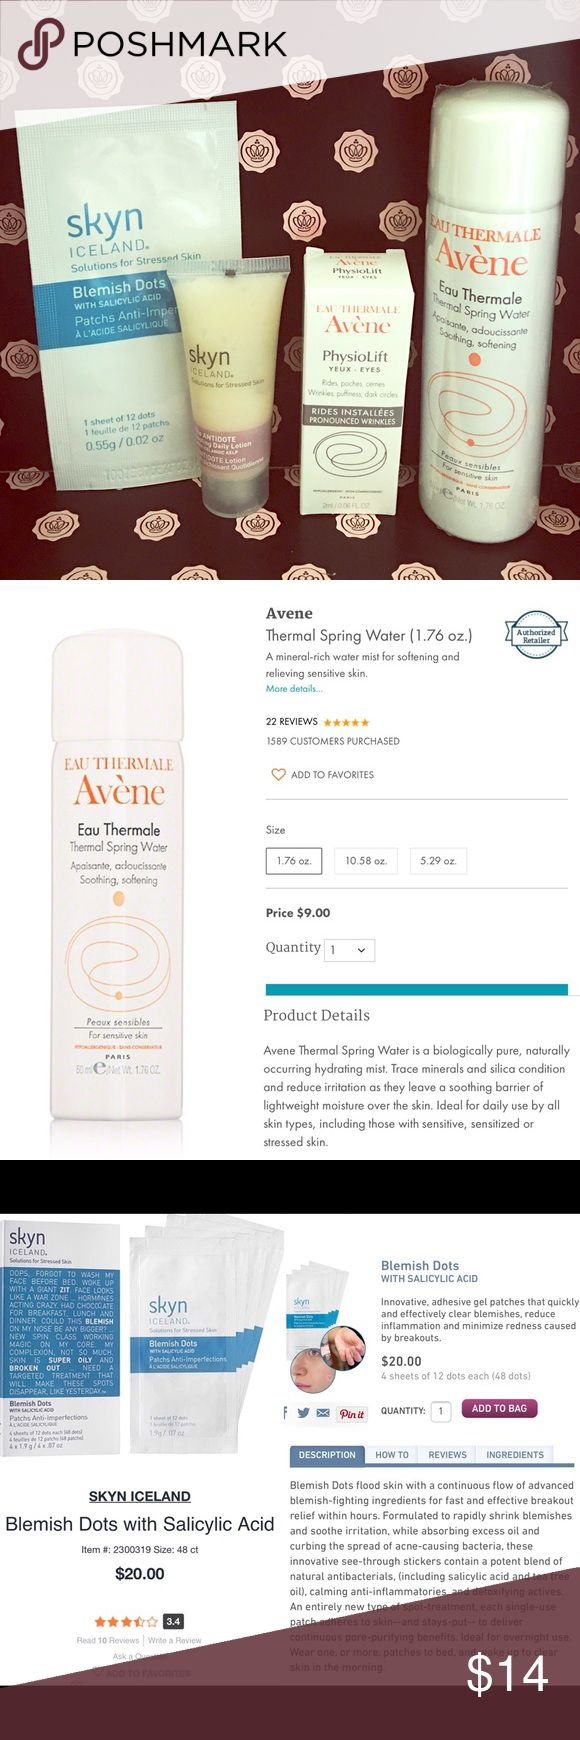 🚫SOLD {Avene/Skyn} Skincare Product Bundle 4 New & Unused Travel Size Skincare Products $32 Value   Avene Thermal Spring Water 1.76oz Avene Physiolift .06oz Skyn the Antidote .5oz Skyn Blemish Dots (1 sheet of 12 dots) Other